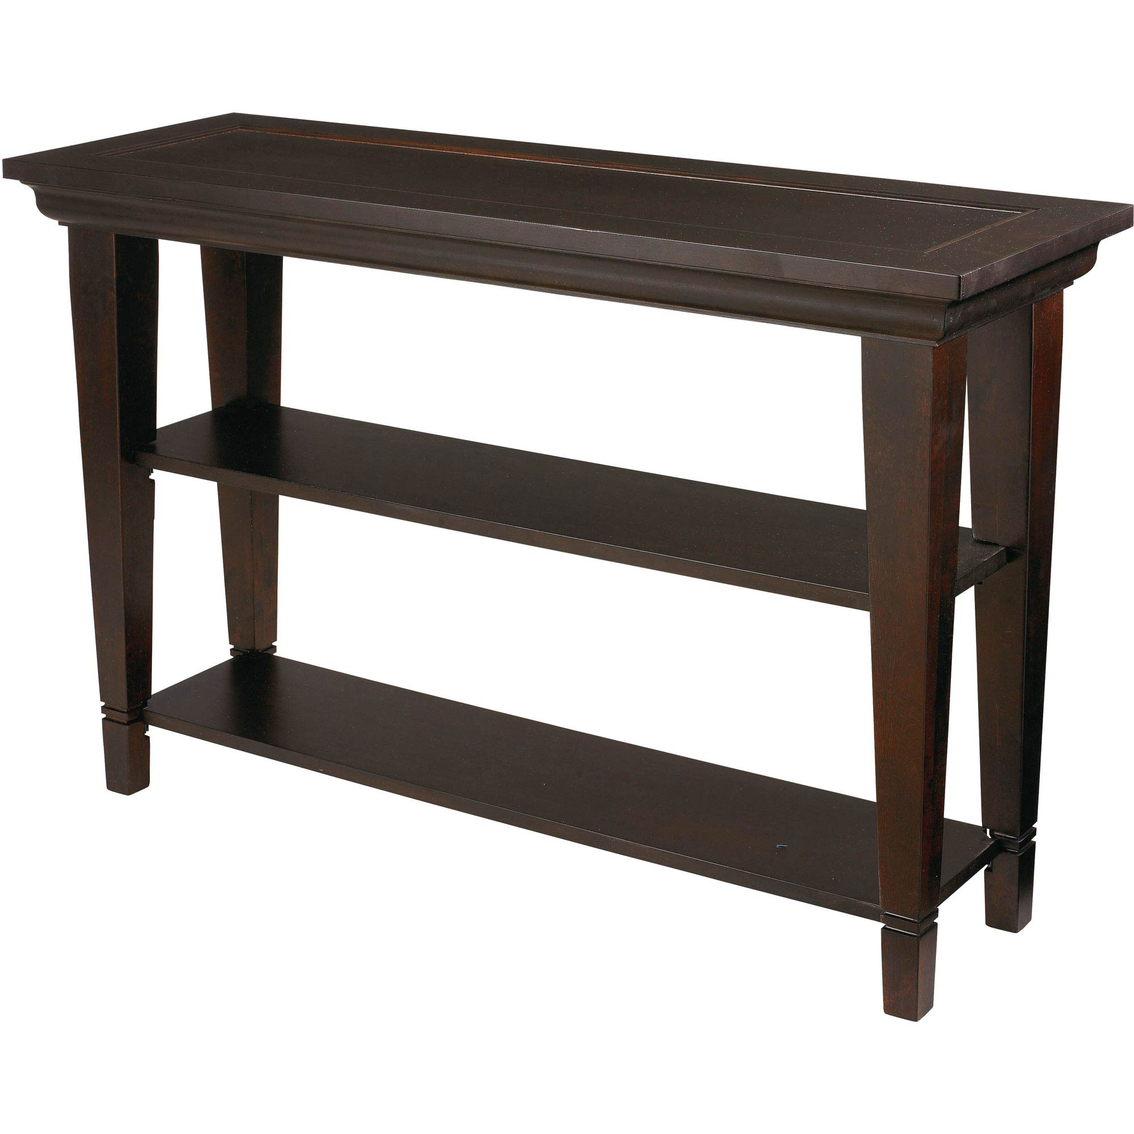 bassett easton sofa table sofa review. Black Bedroom Furniture Sets. Home Design Ideas